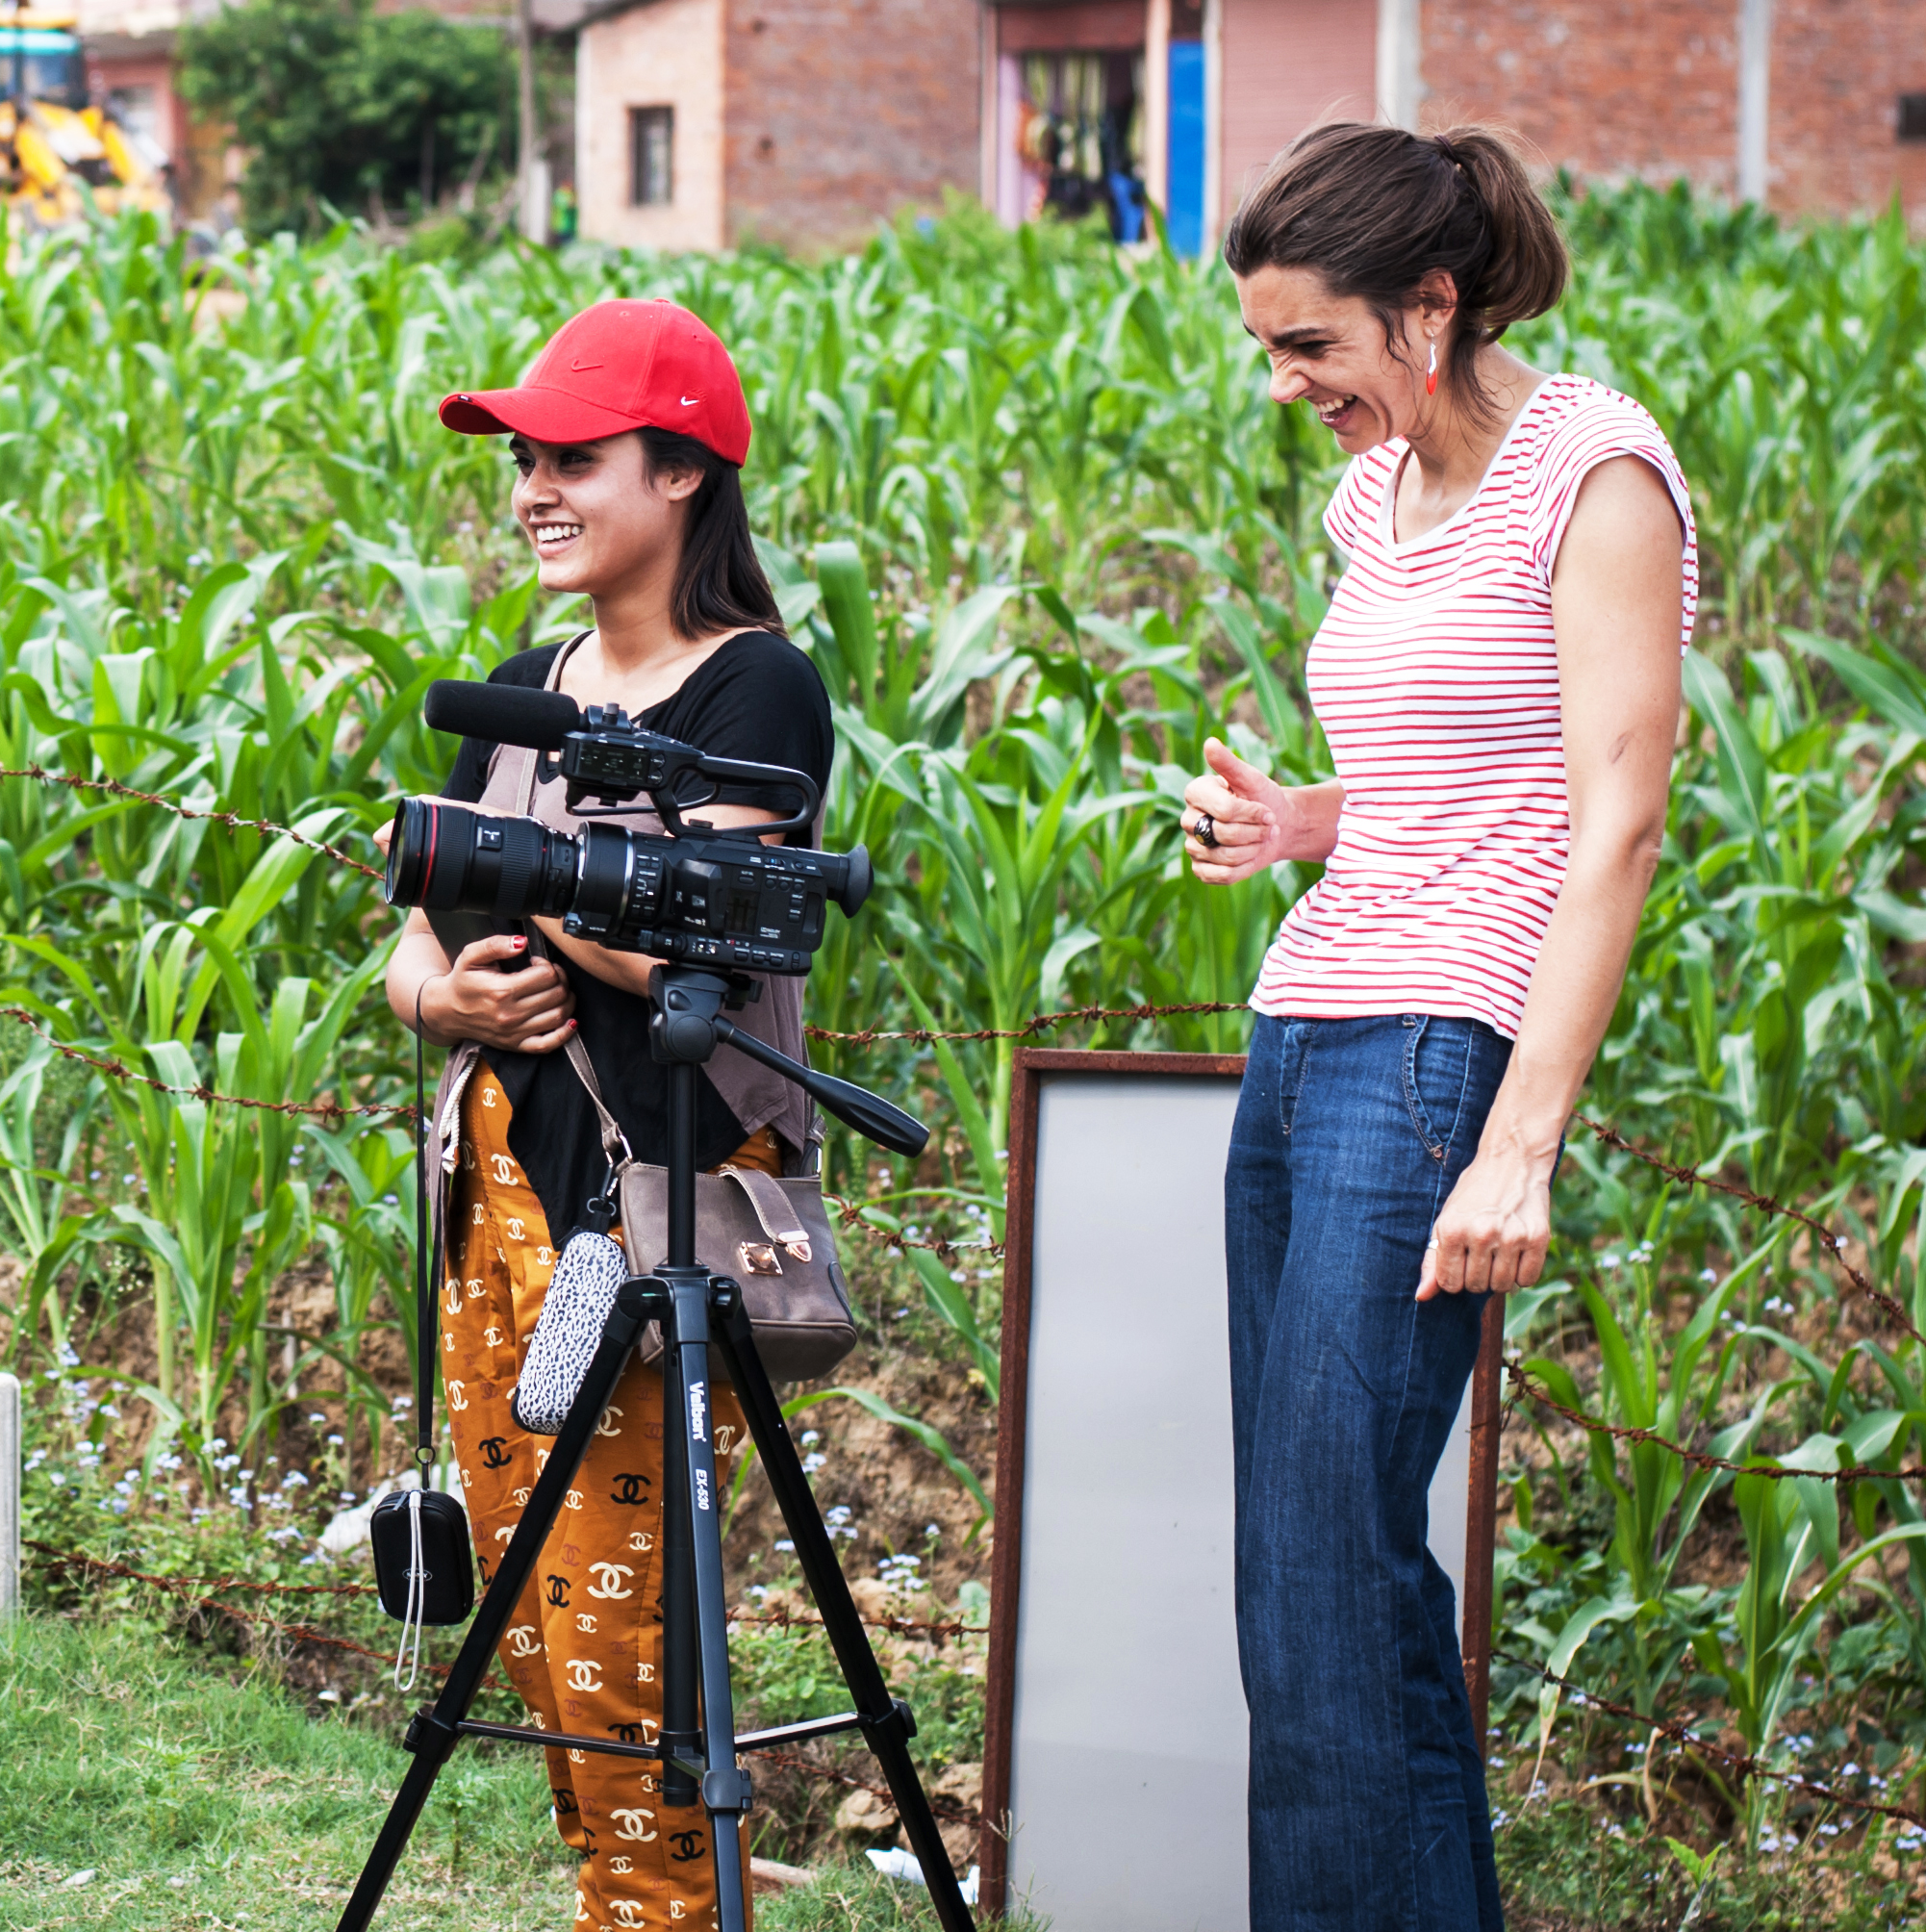 Filmmaking in rural Nepal